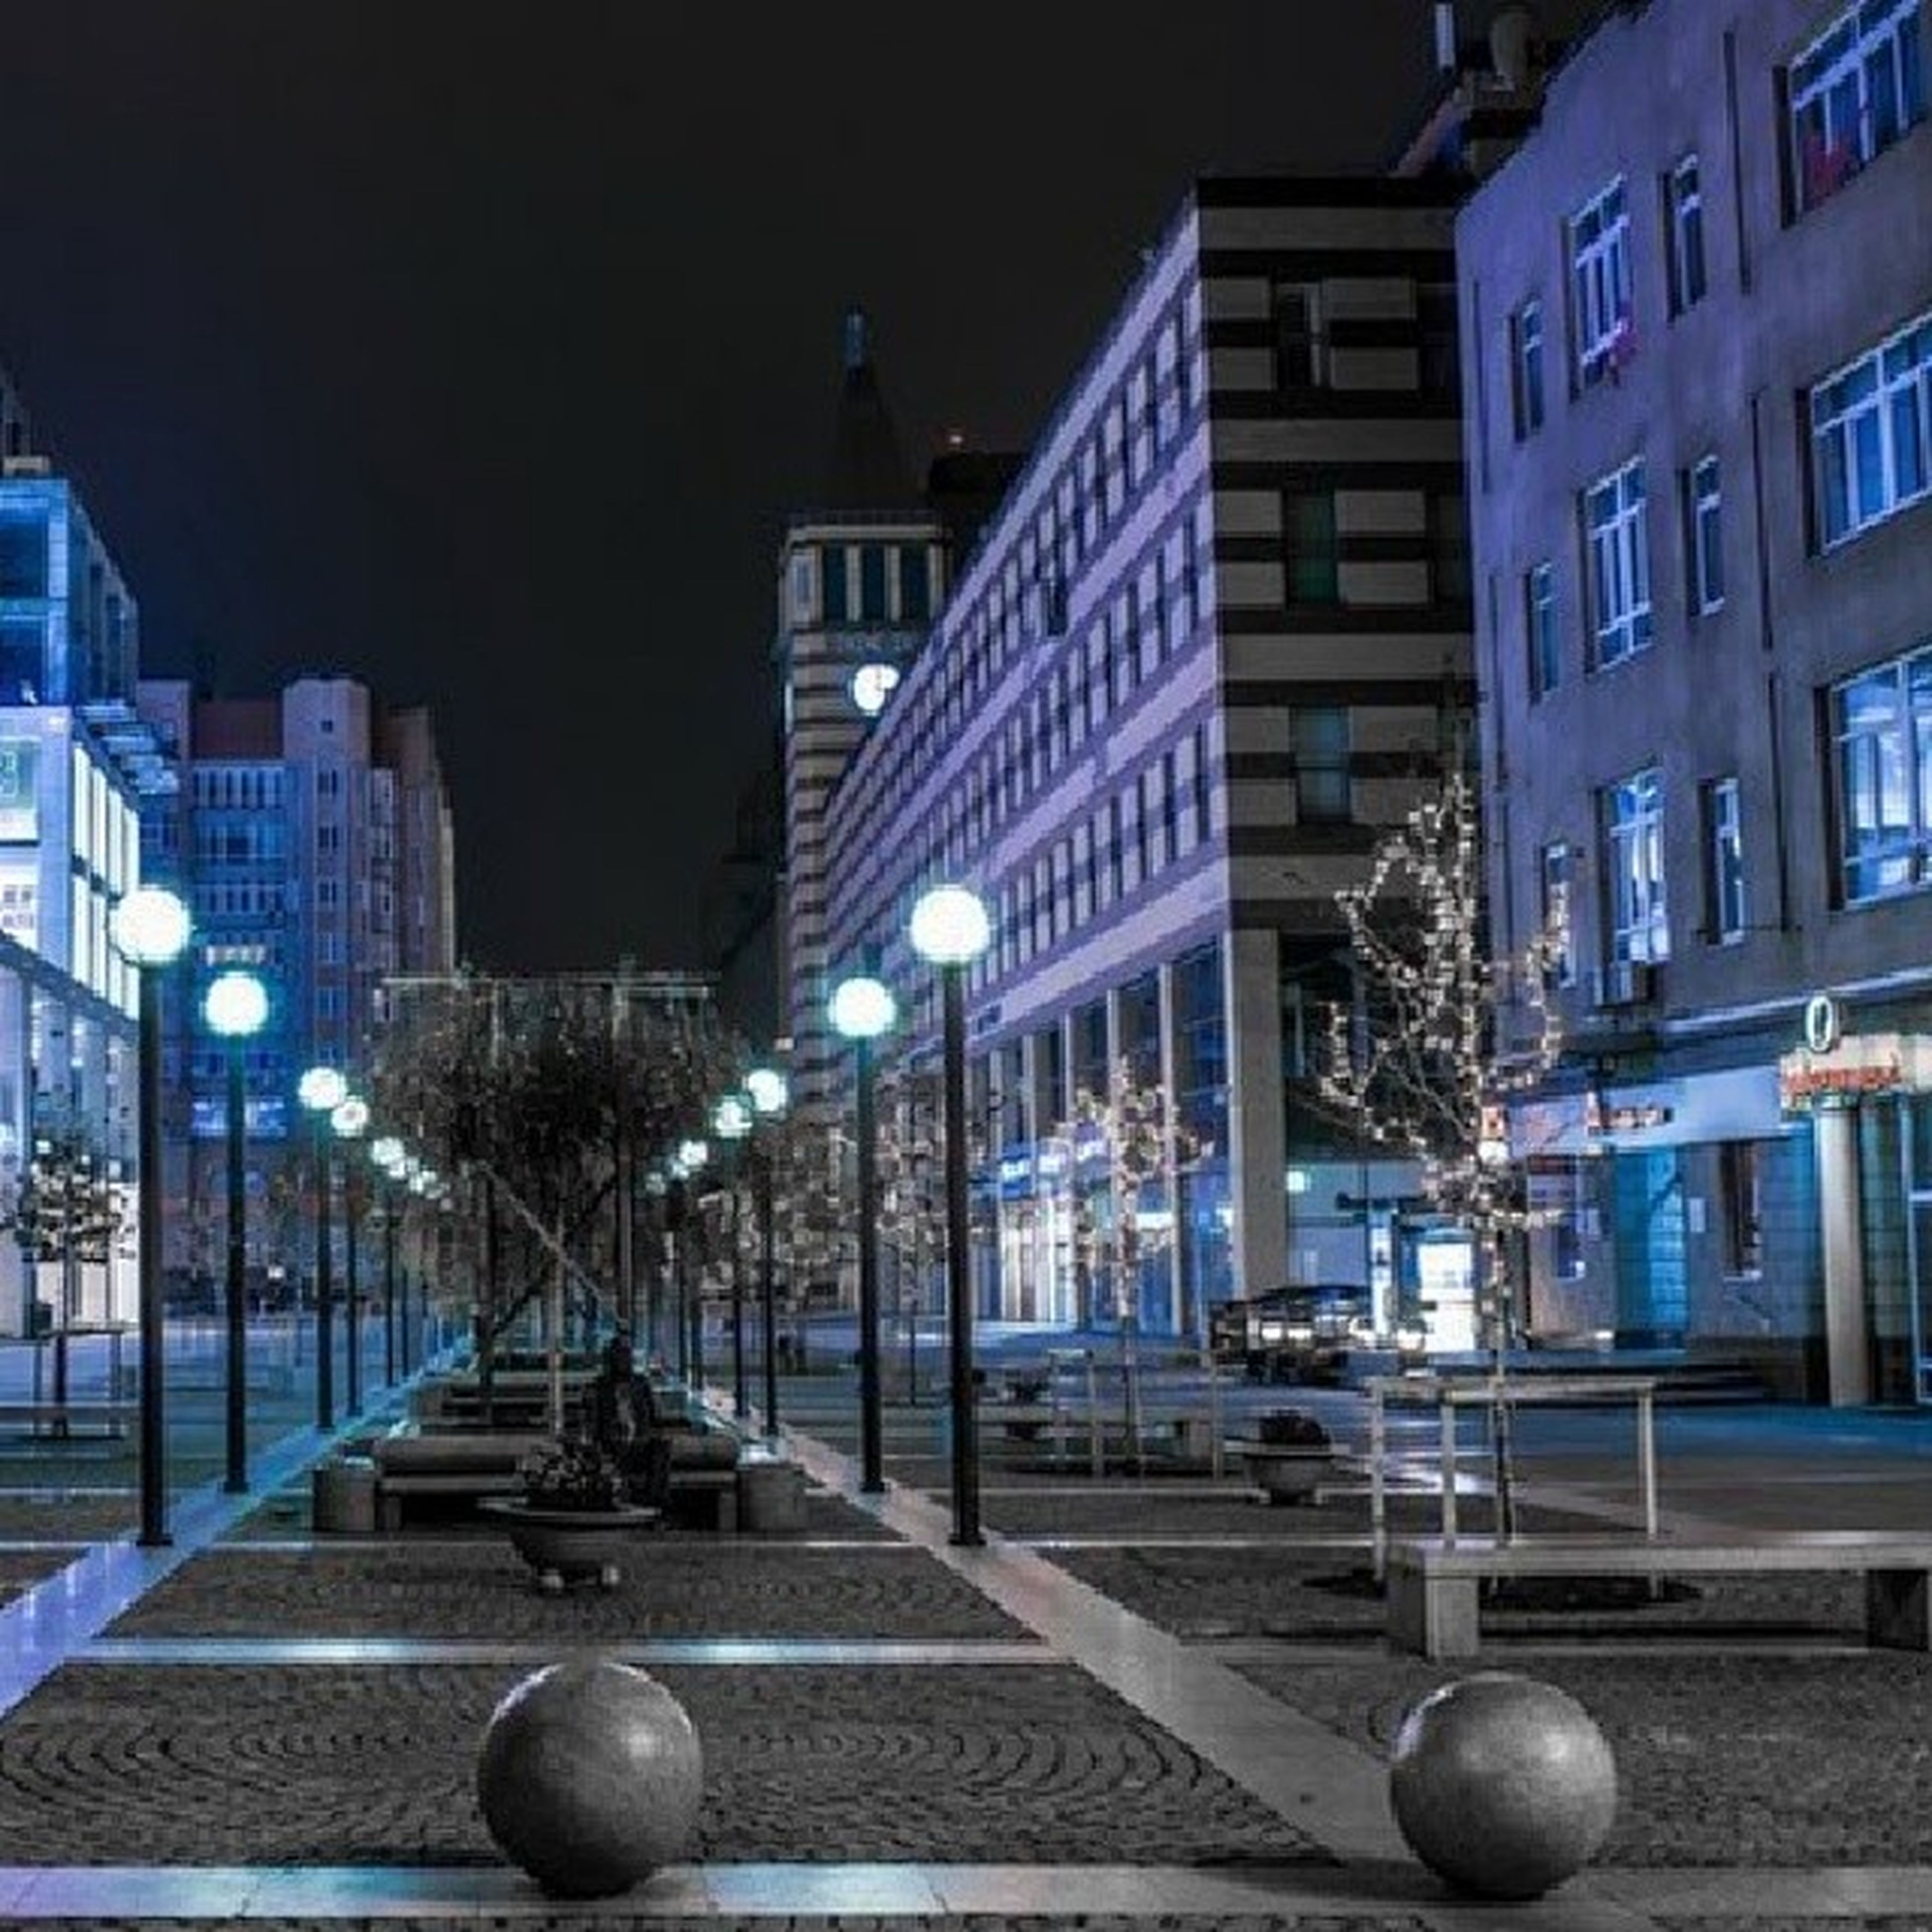 architecture, built structure, building exterior, illuminated, city, night, street light, lighting equipment, sky, street, residential building, building, outdoors, no people, the way forward, residential structure, incidental people, railing, city life, empty